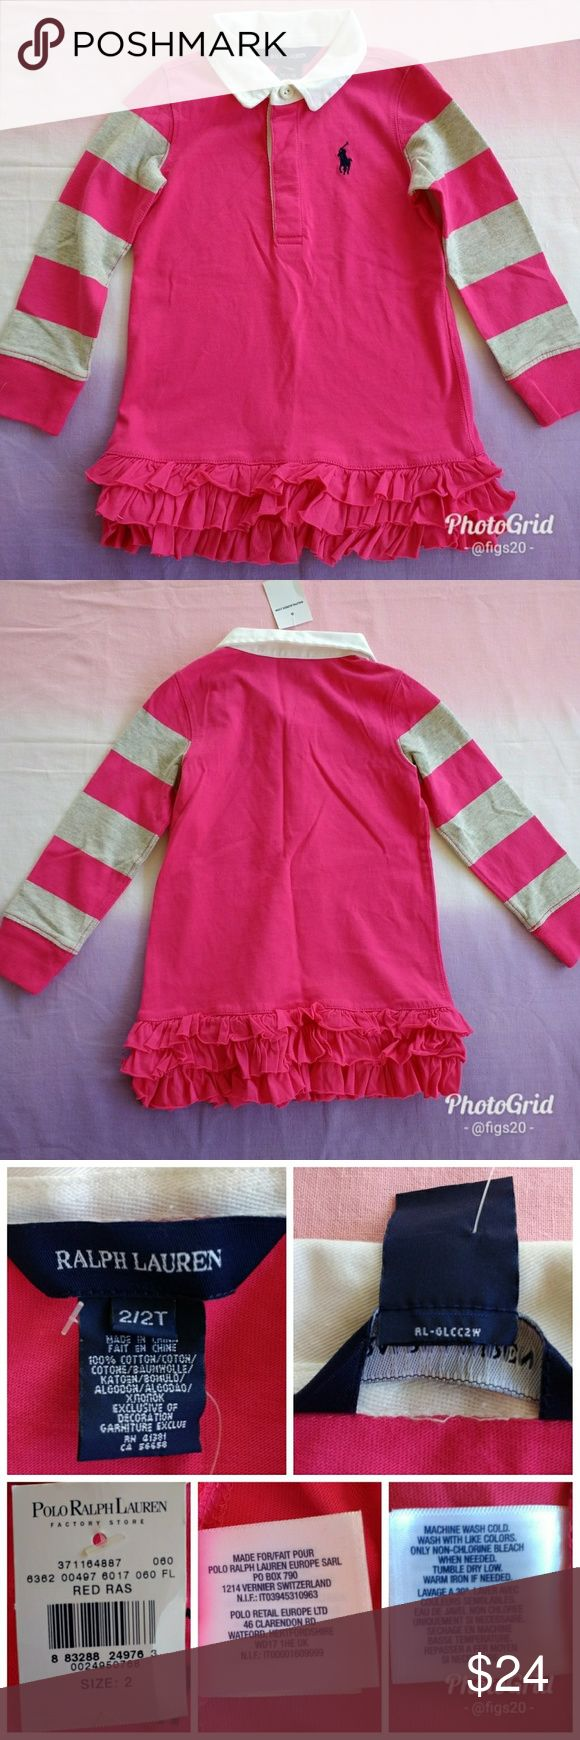 NWT RL Rugby Jersey Style Dress This is a lovely NWT Ralph Lauren rugby jersey style dress with pink and grey striped sleeves, a white collar, and pink shirt ruffles in size 2/2T from the Ralph Lauren factory store. Adorable! Let me know if you have any questions! Ralph Lauren Dresses Casual